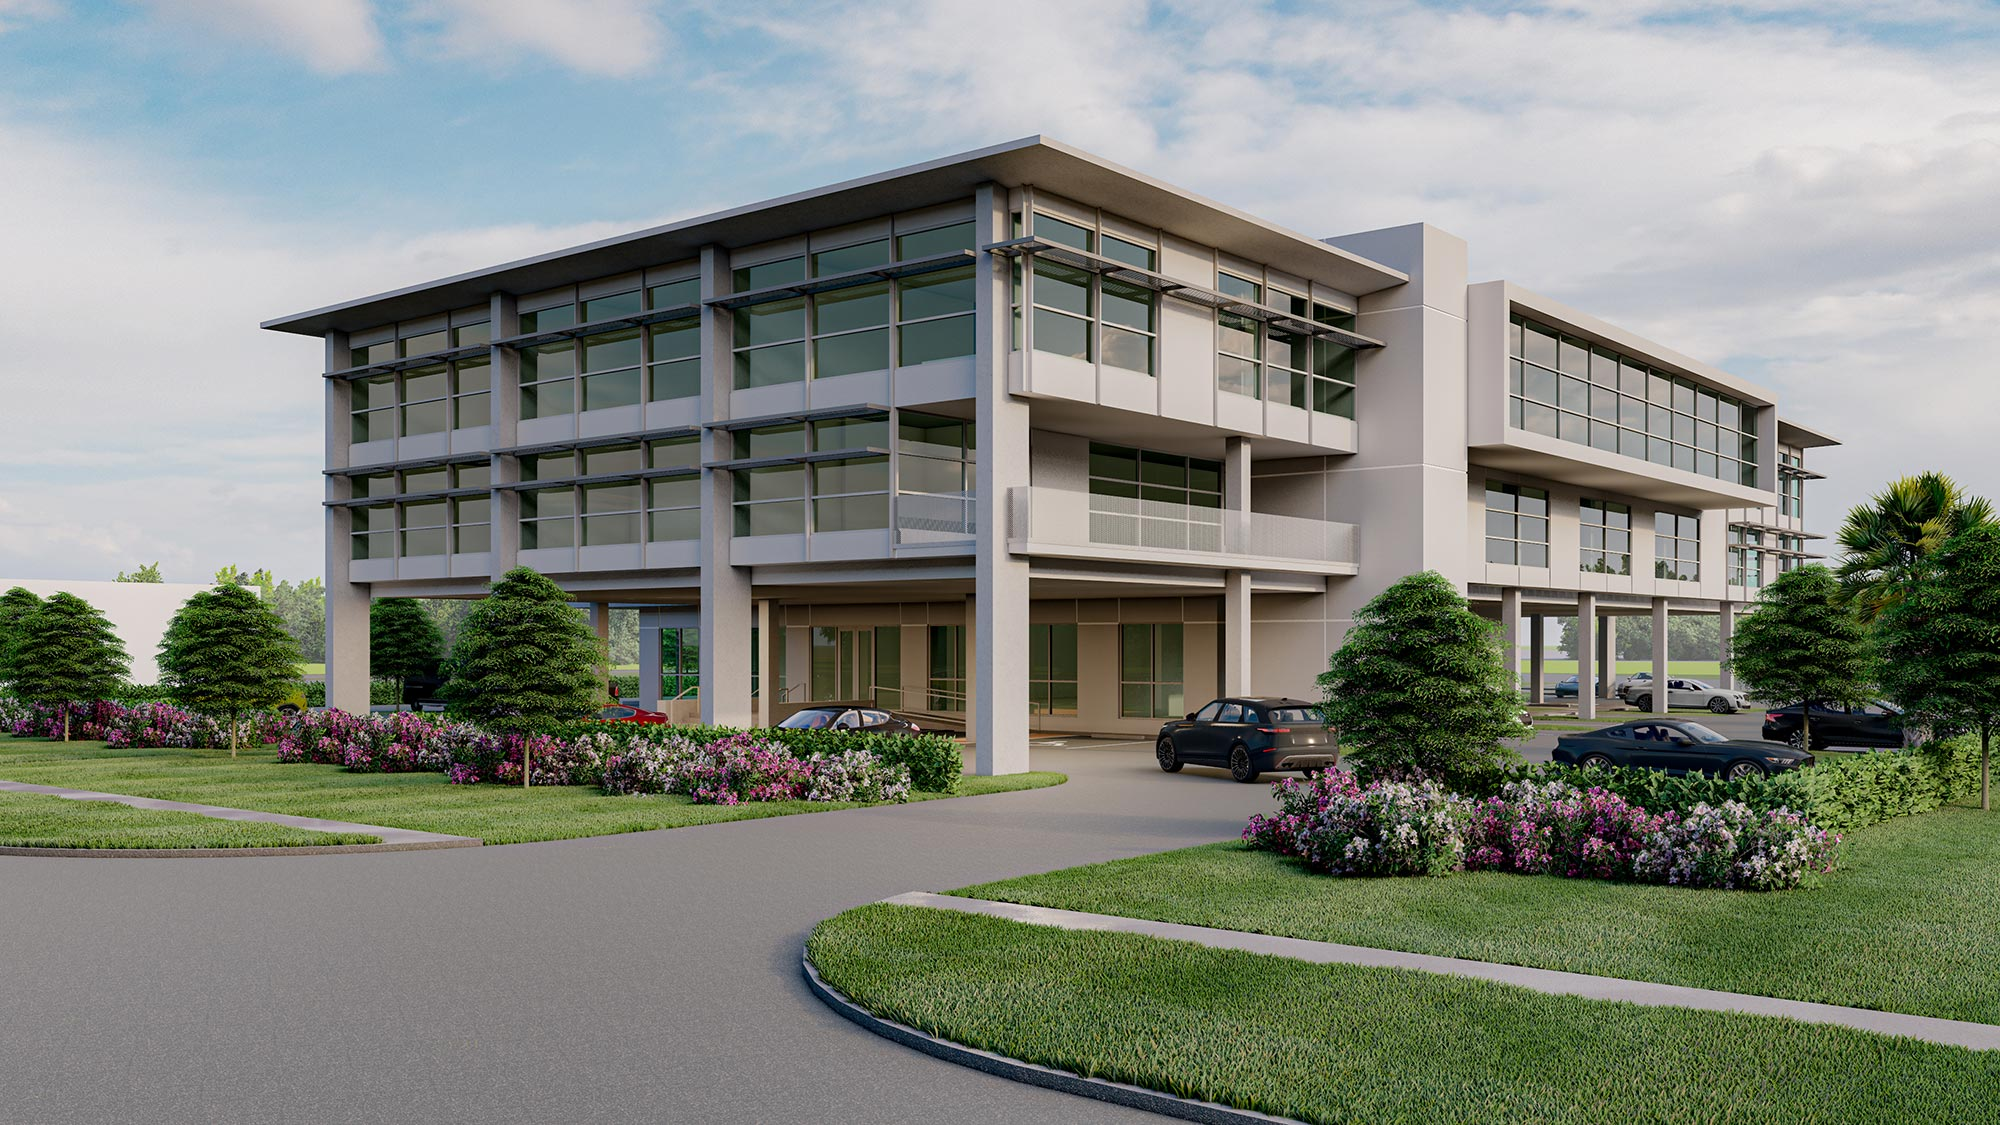 Rendering of building during the day from southwest corner.